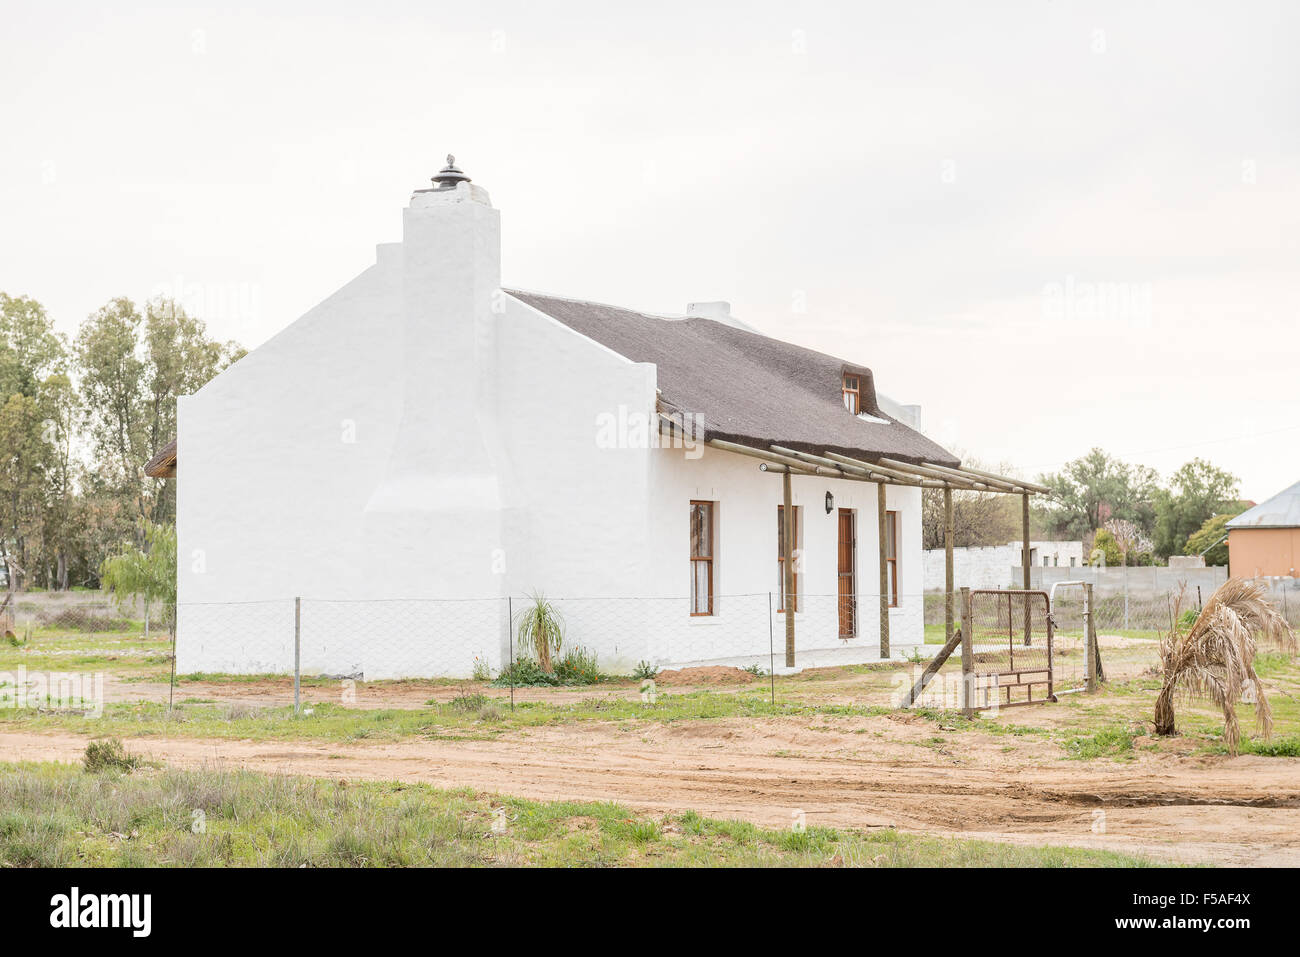 nieuwoudtville south africa august 12 2015 a rustic house in nieuwoudtville a small town in the hantam region of the north